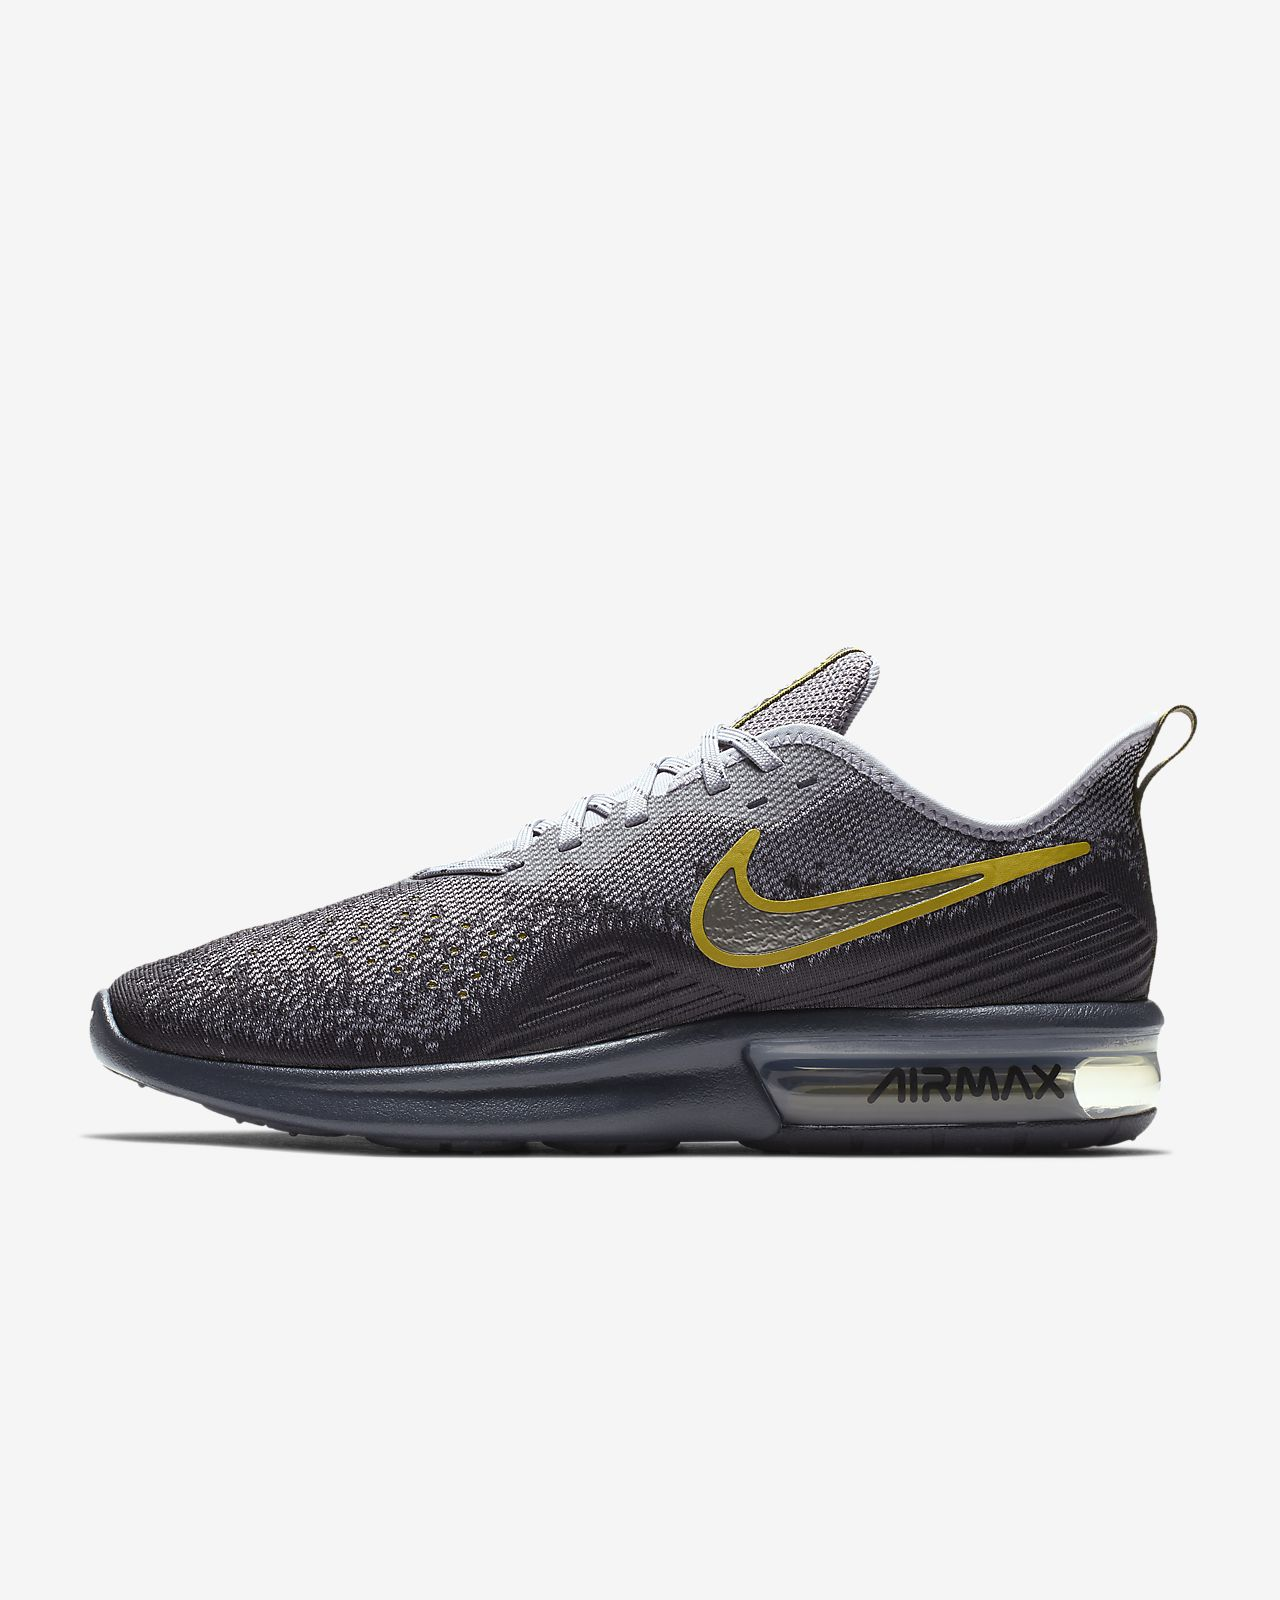 8f907b14479ec Low Resolution Nike Air Max Sequent 4 Men s Shoe Nike Air Max Sequent 4  Men s Shoe